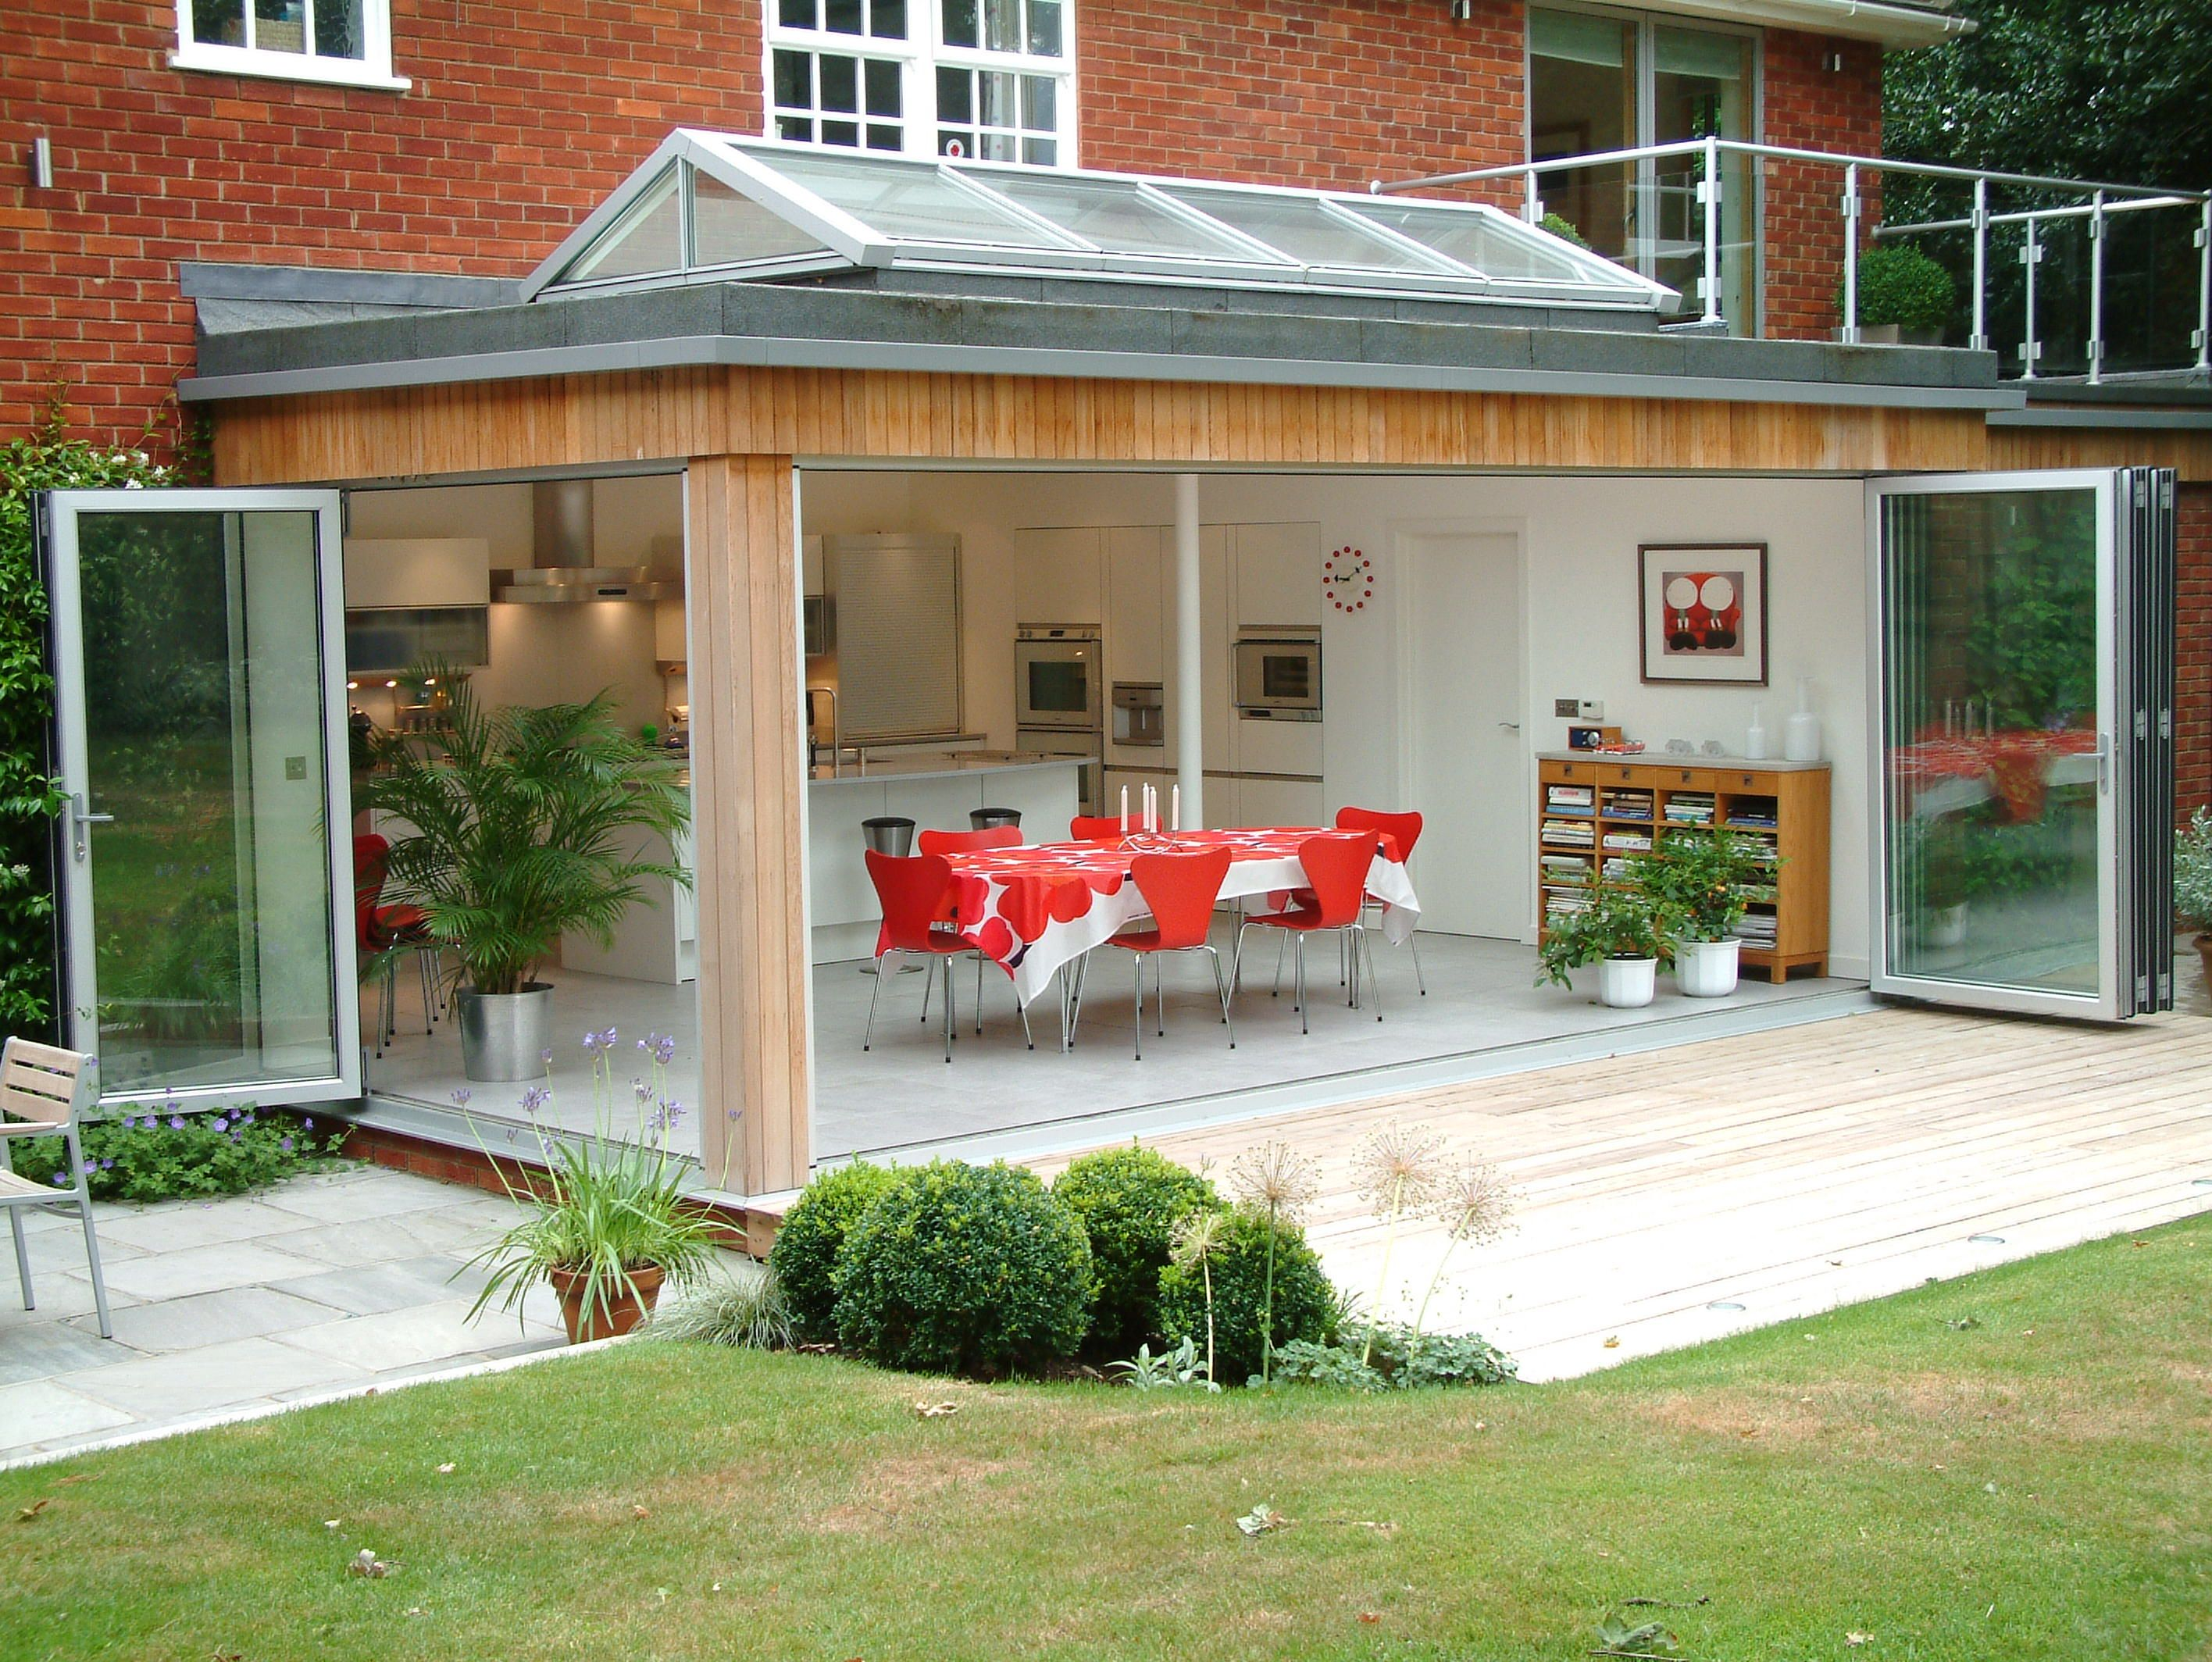 Flat extension roof idea flat roof skylights flat extension roof idea - Www 4seasononline Co Uk Suppliers Of Bespoke Bifold Door Systems Rooflights Kitchen Extensionshouse Extensionsbungalow Extensionsextension Ideasglass